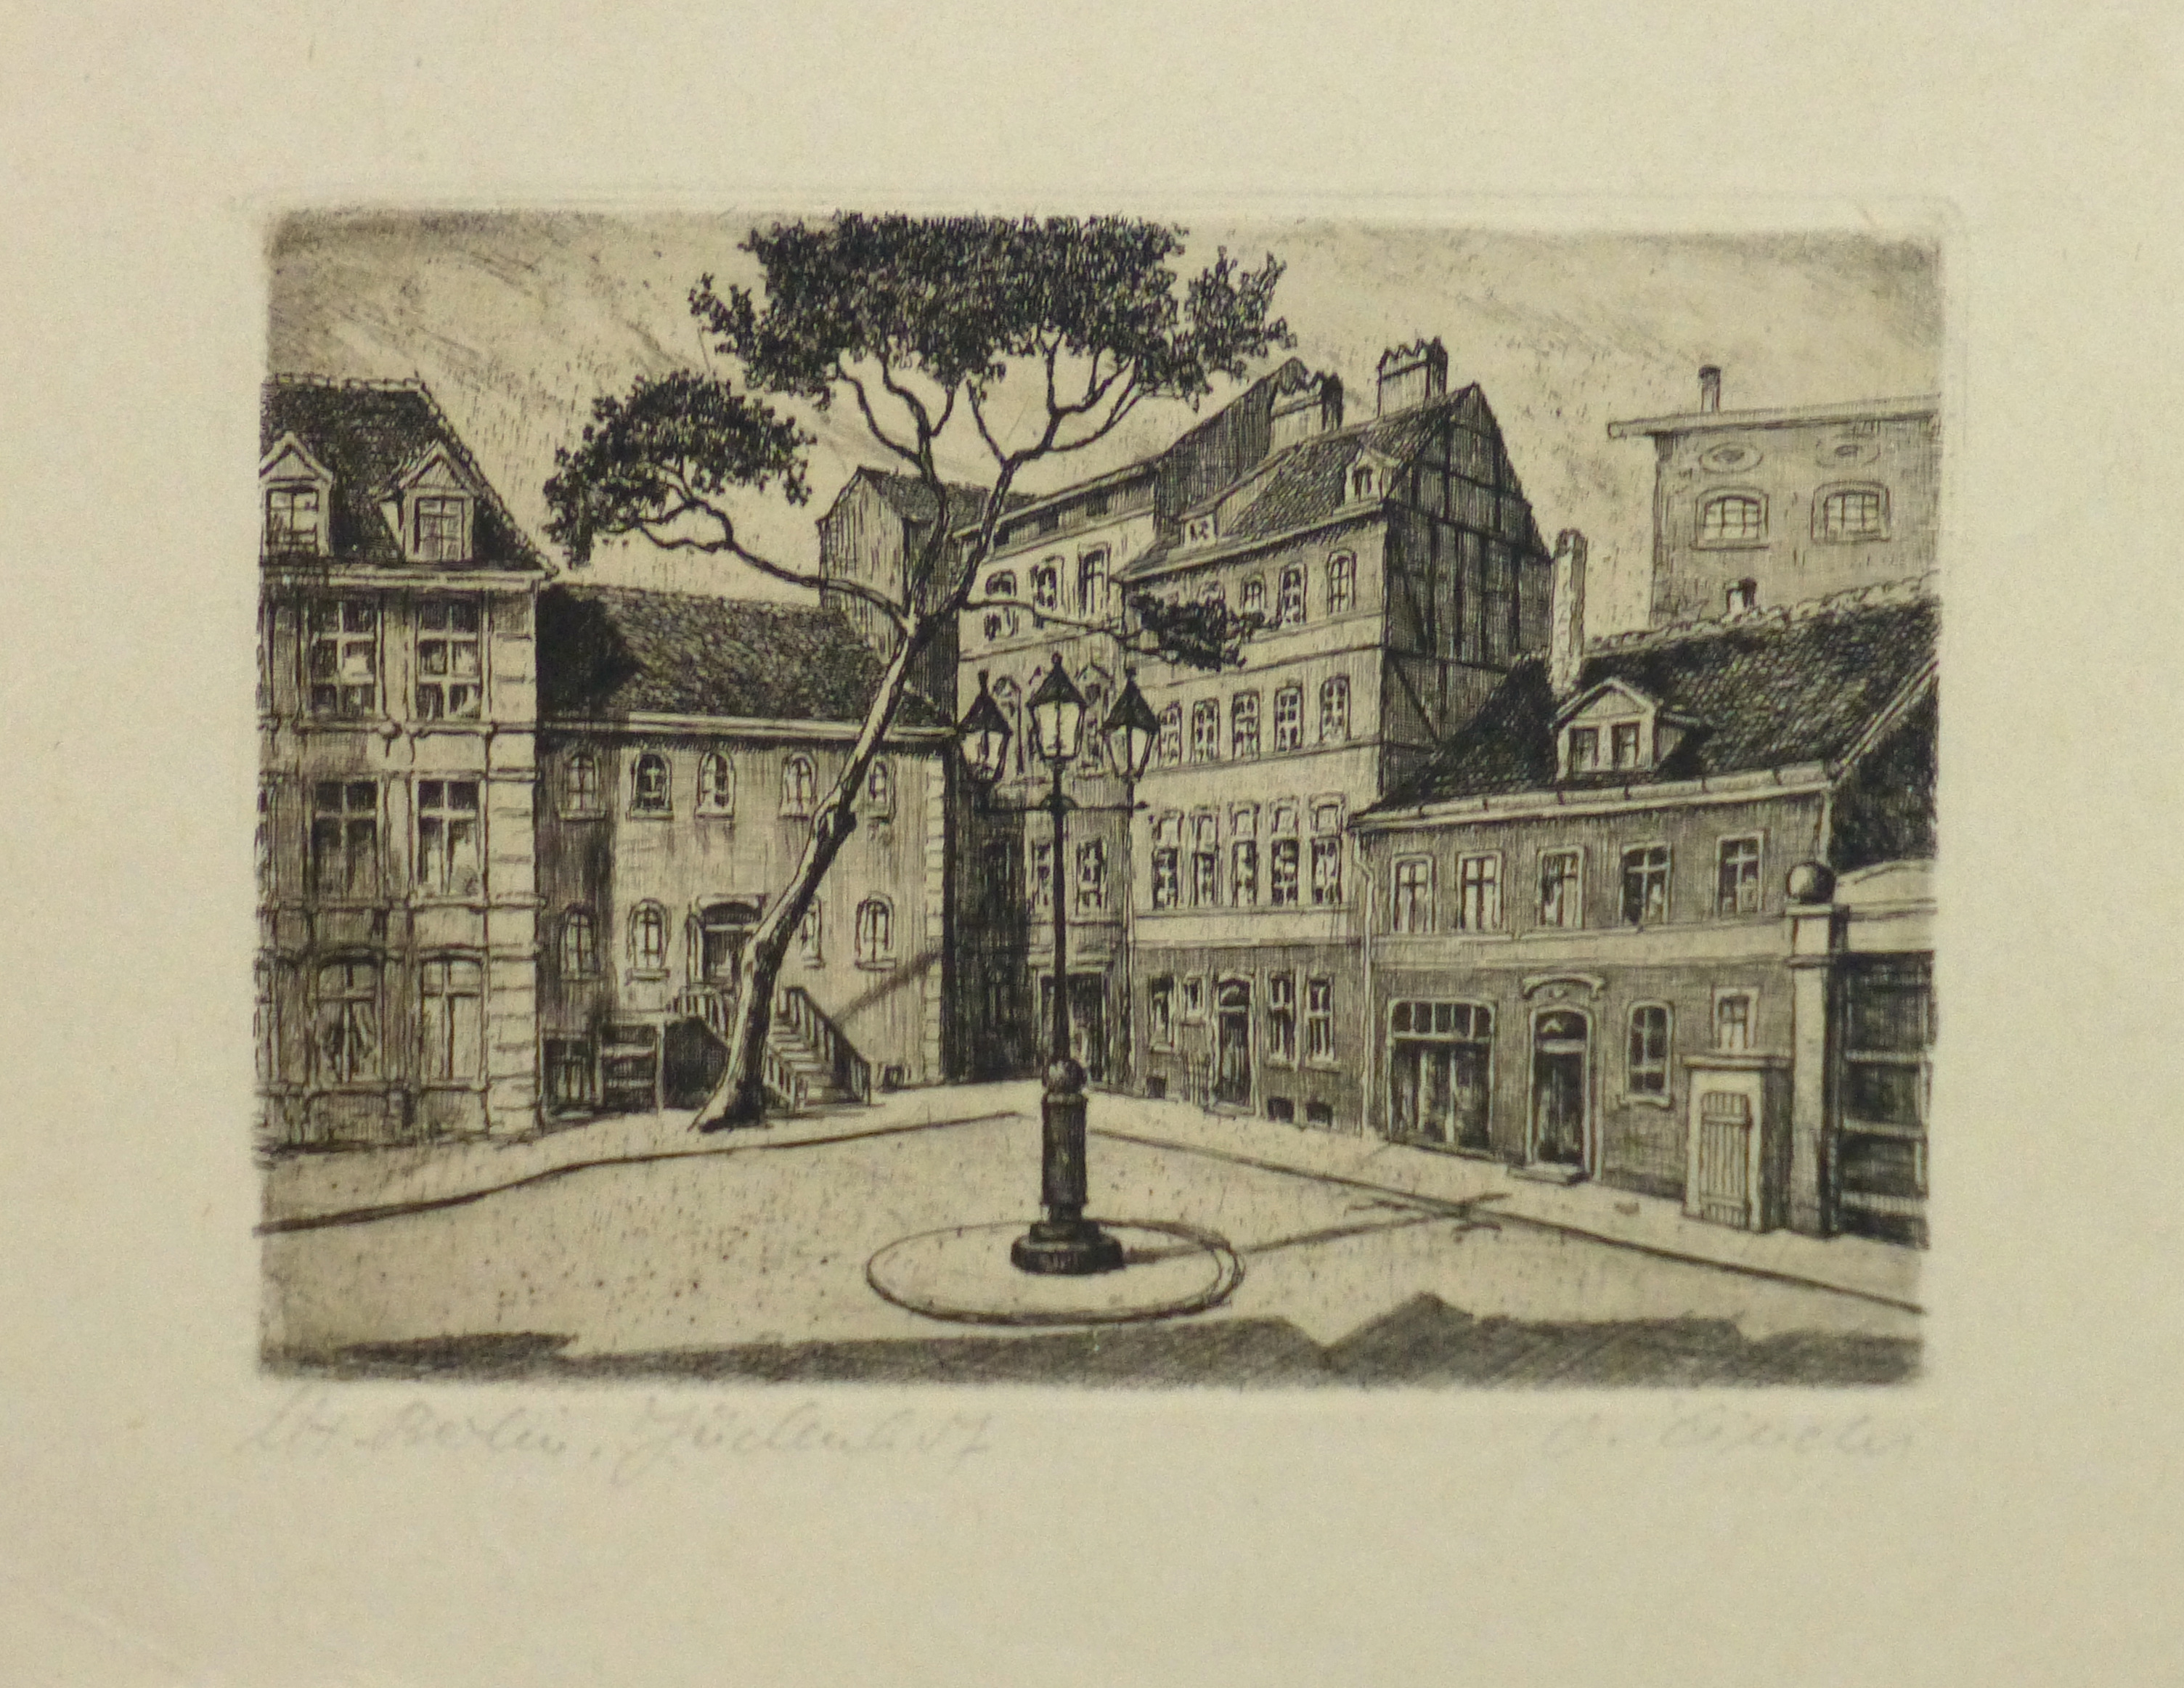 Aquatint - Town Center, Circa 1930-main-10753M